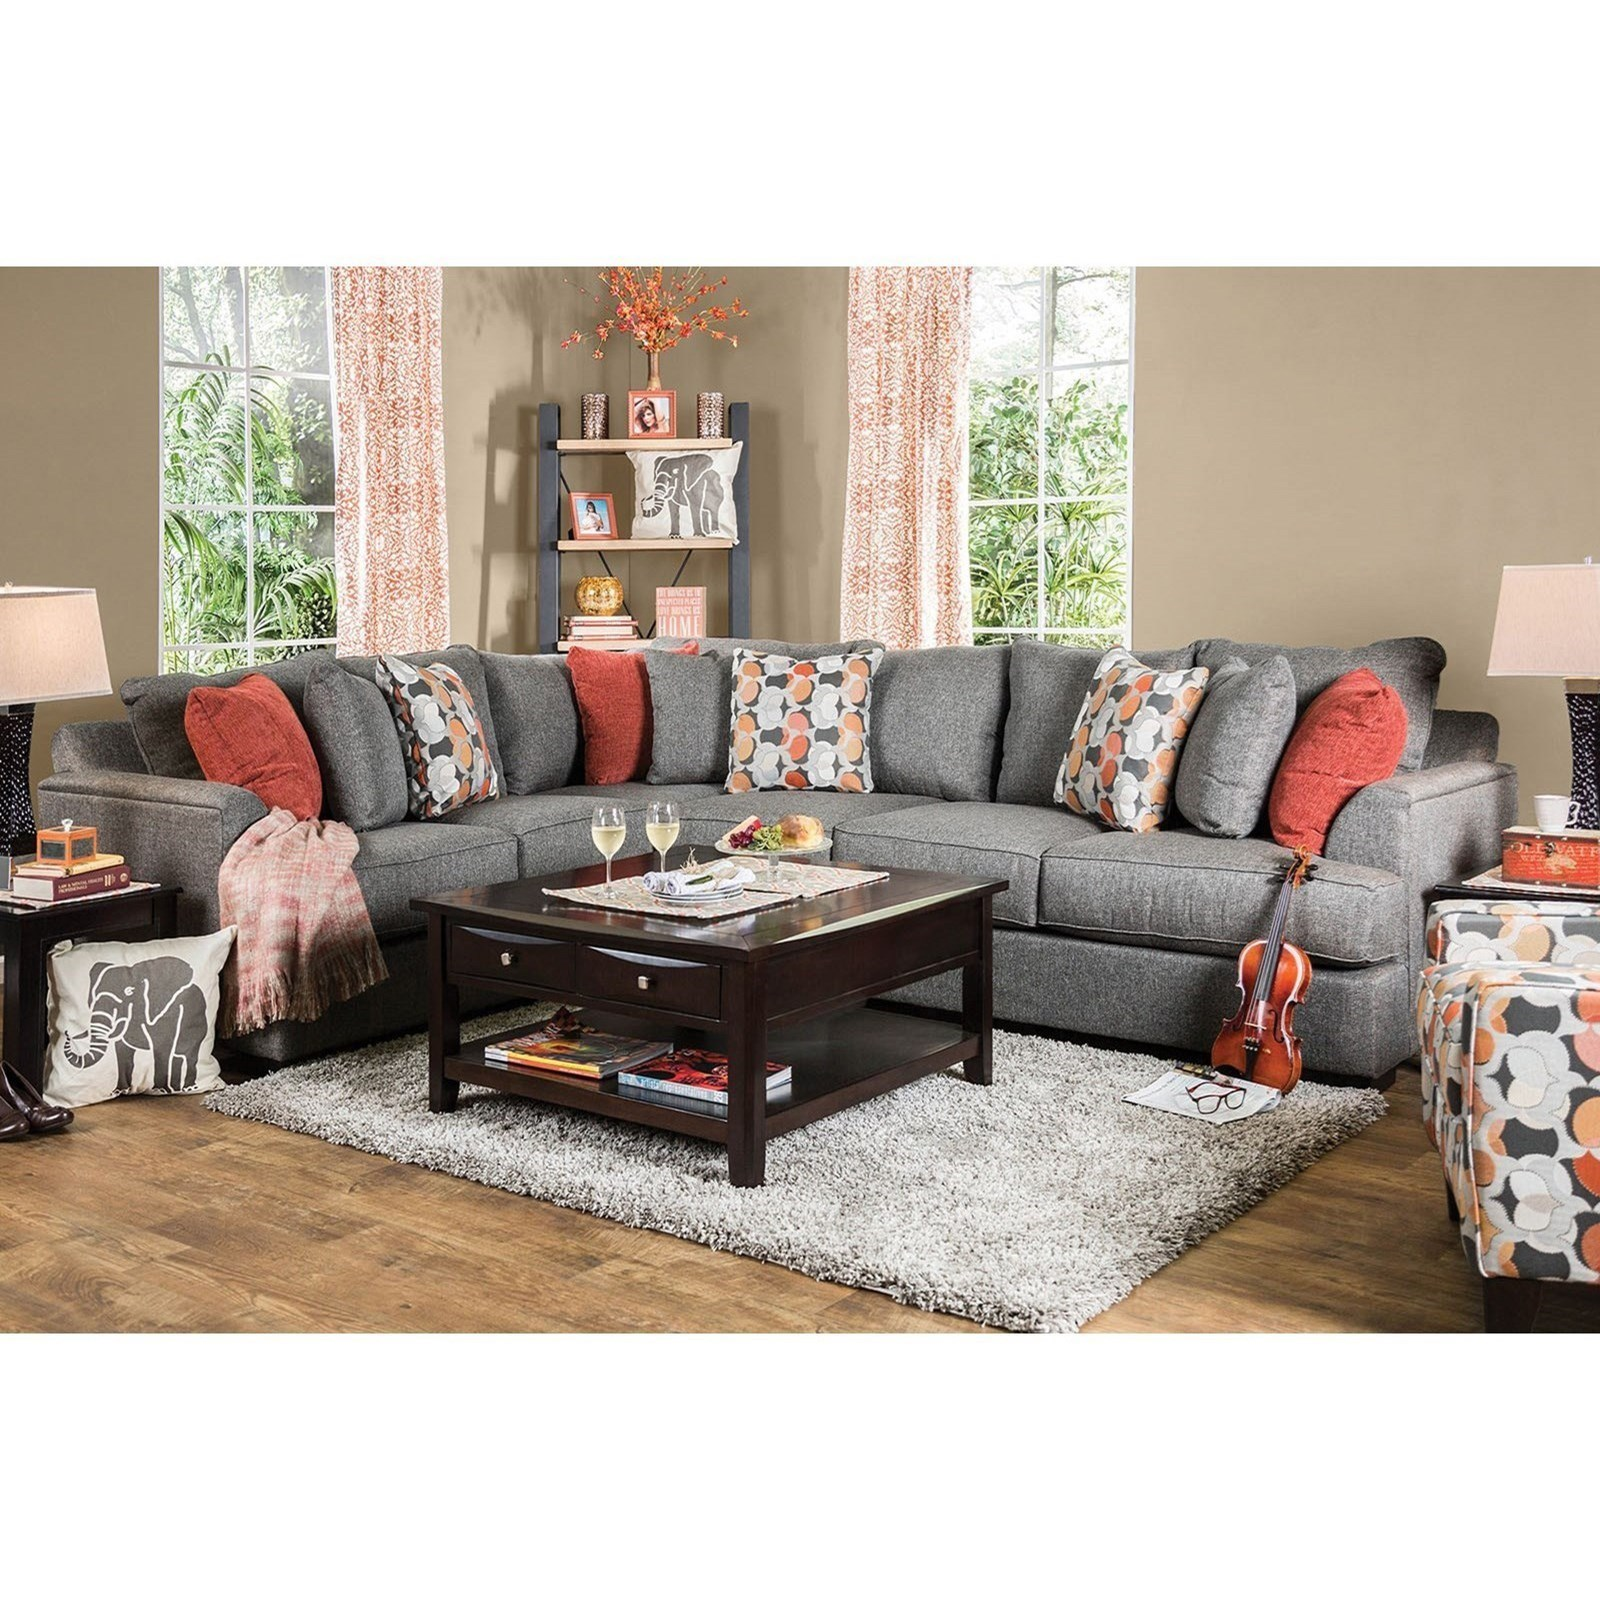 Pennington Sectional Sofa by Furniture of America - FOA at Del Sol Furniture